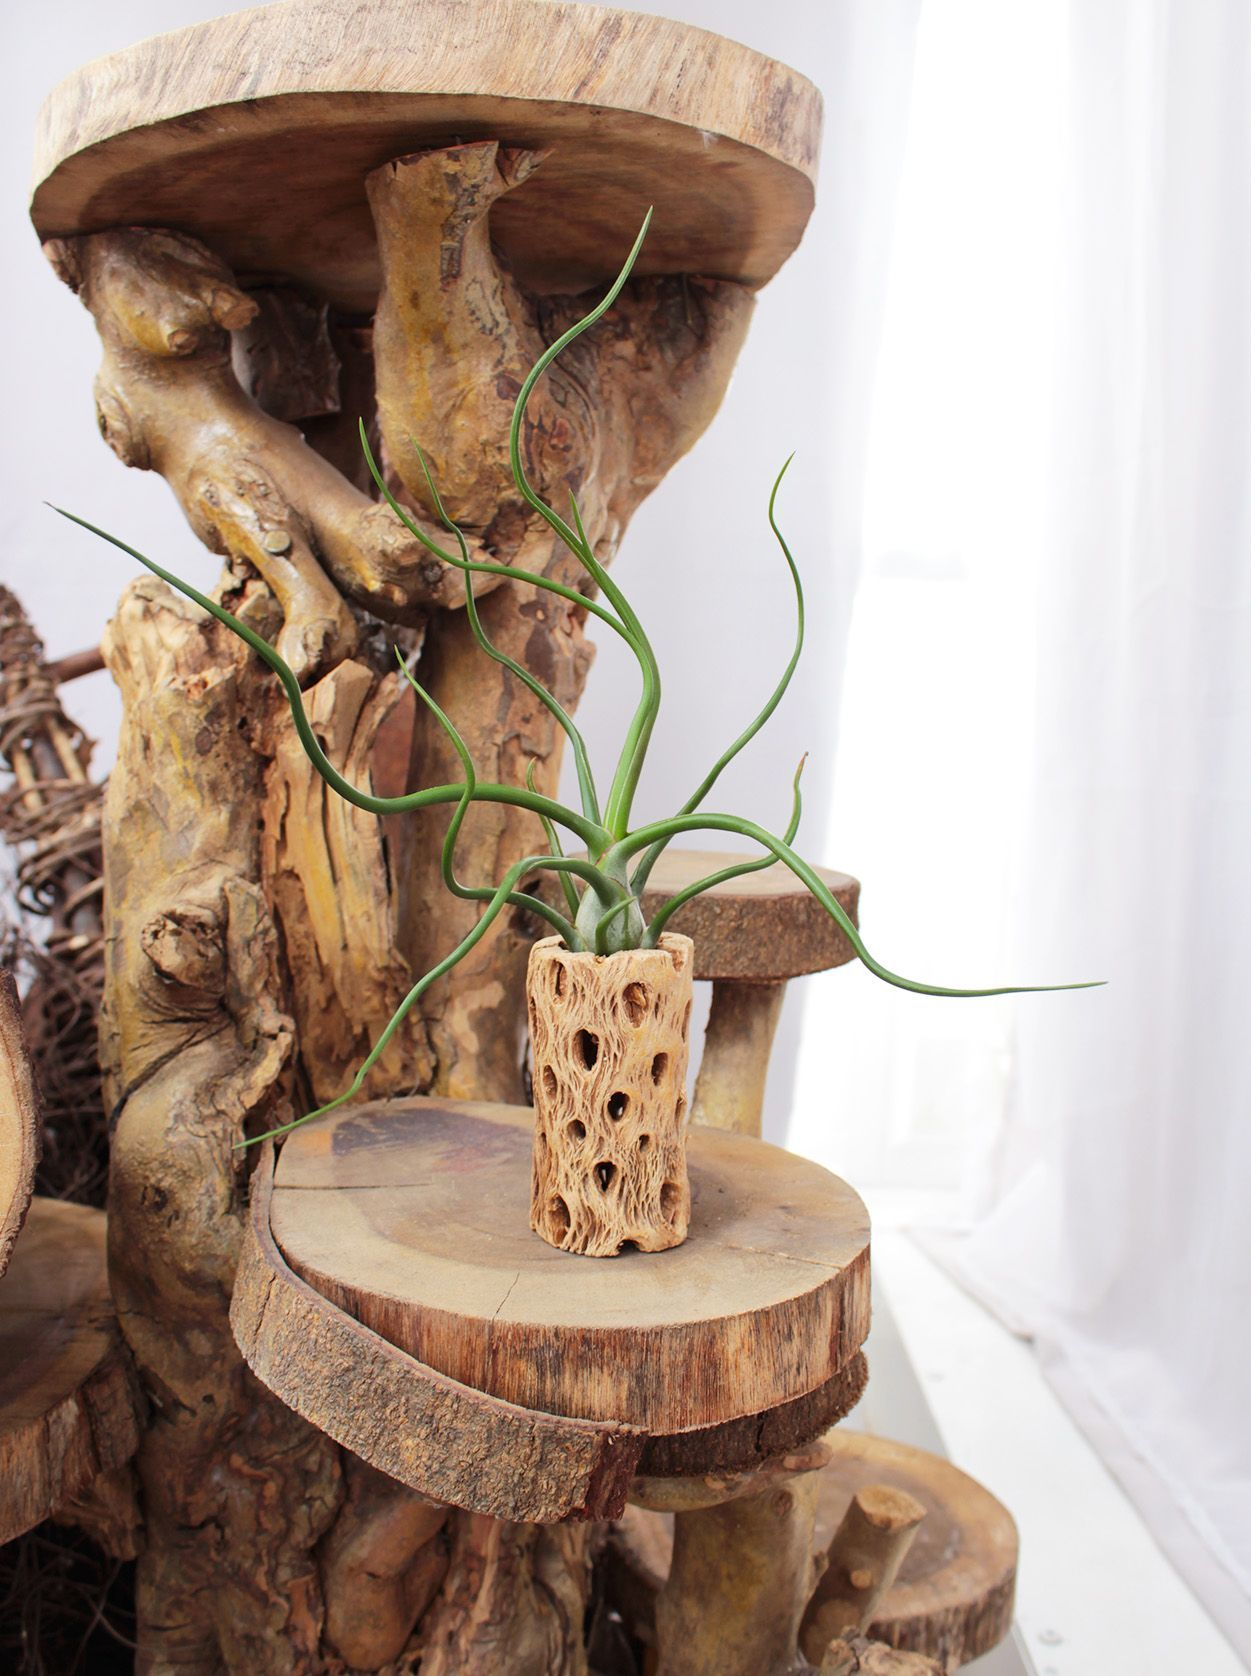 Tillandsia Bulbosa Belize Tillandsia, Air plant holder